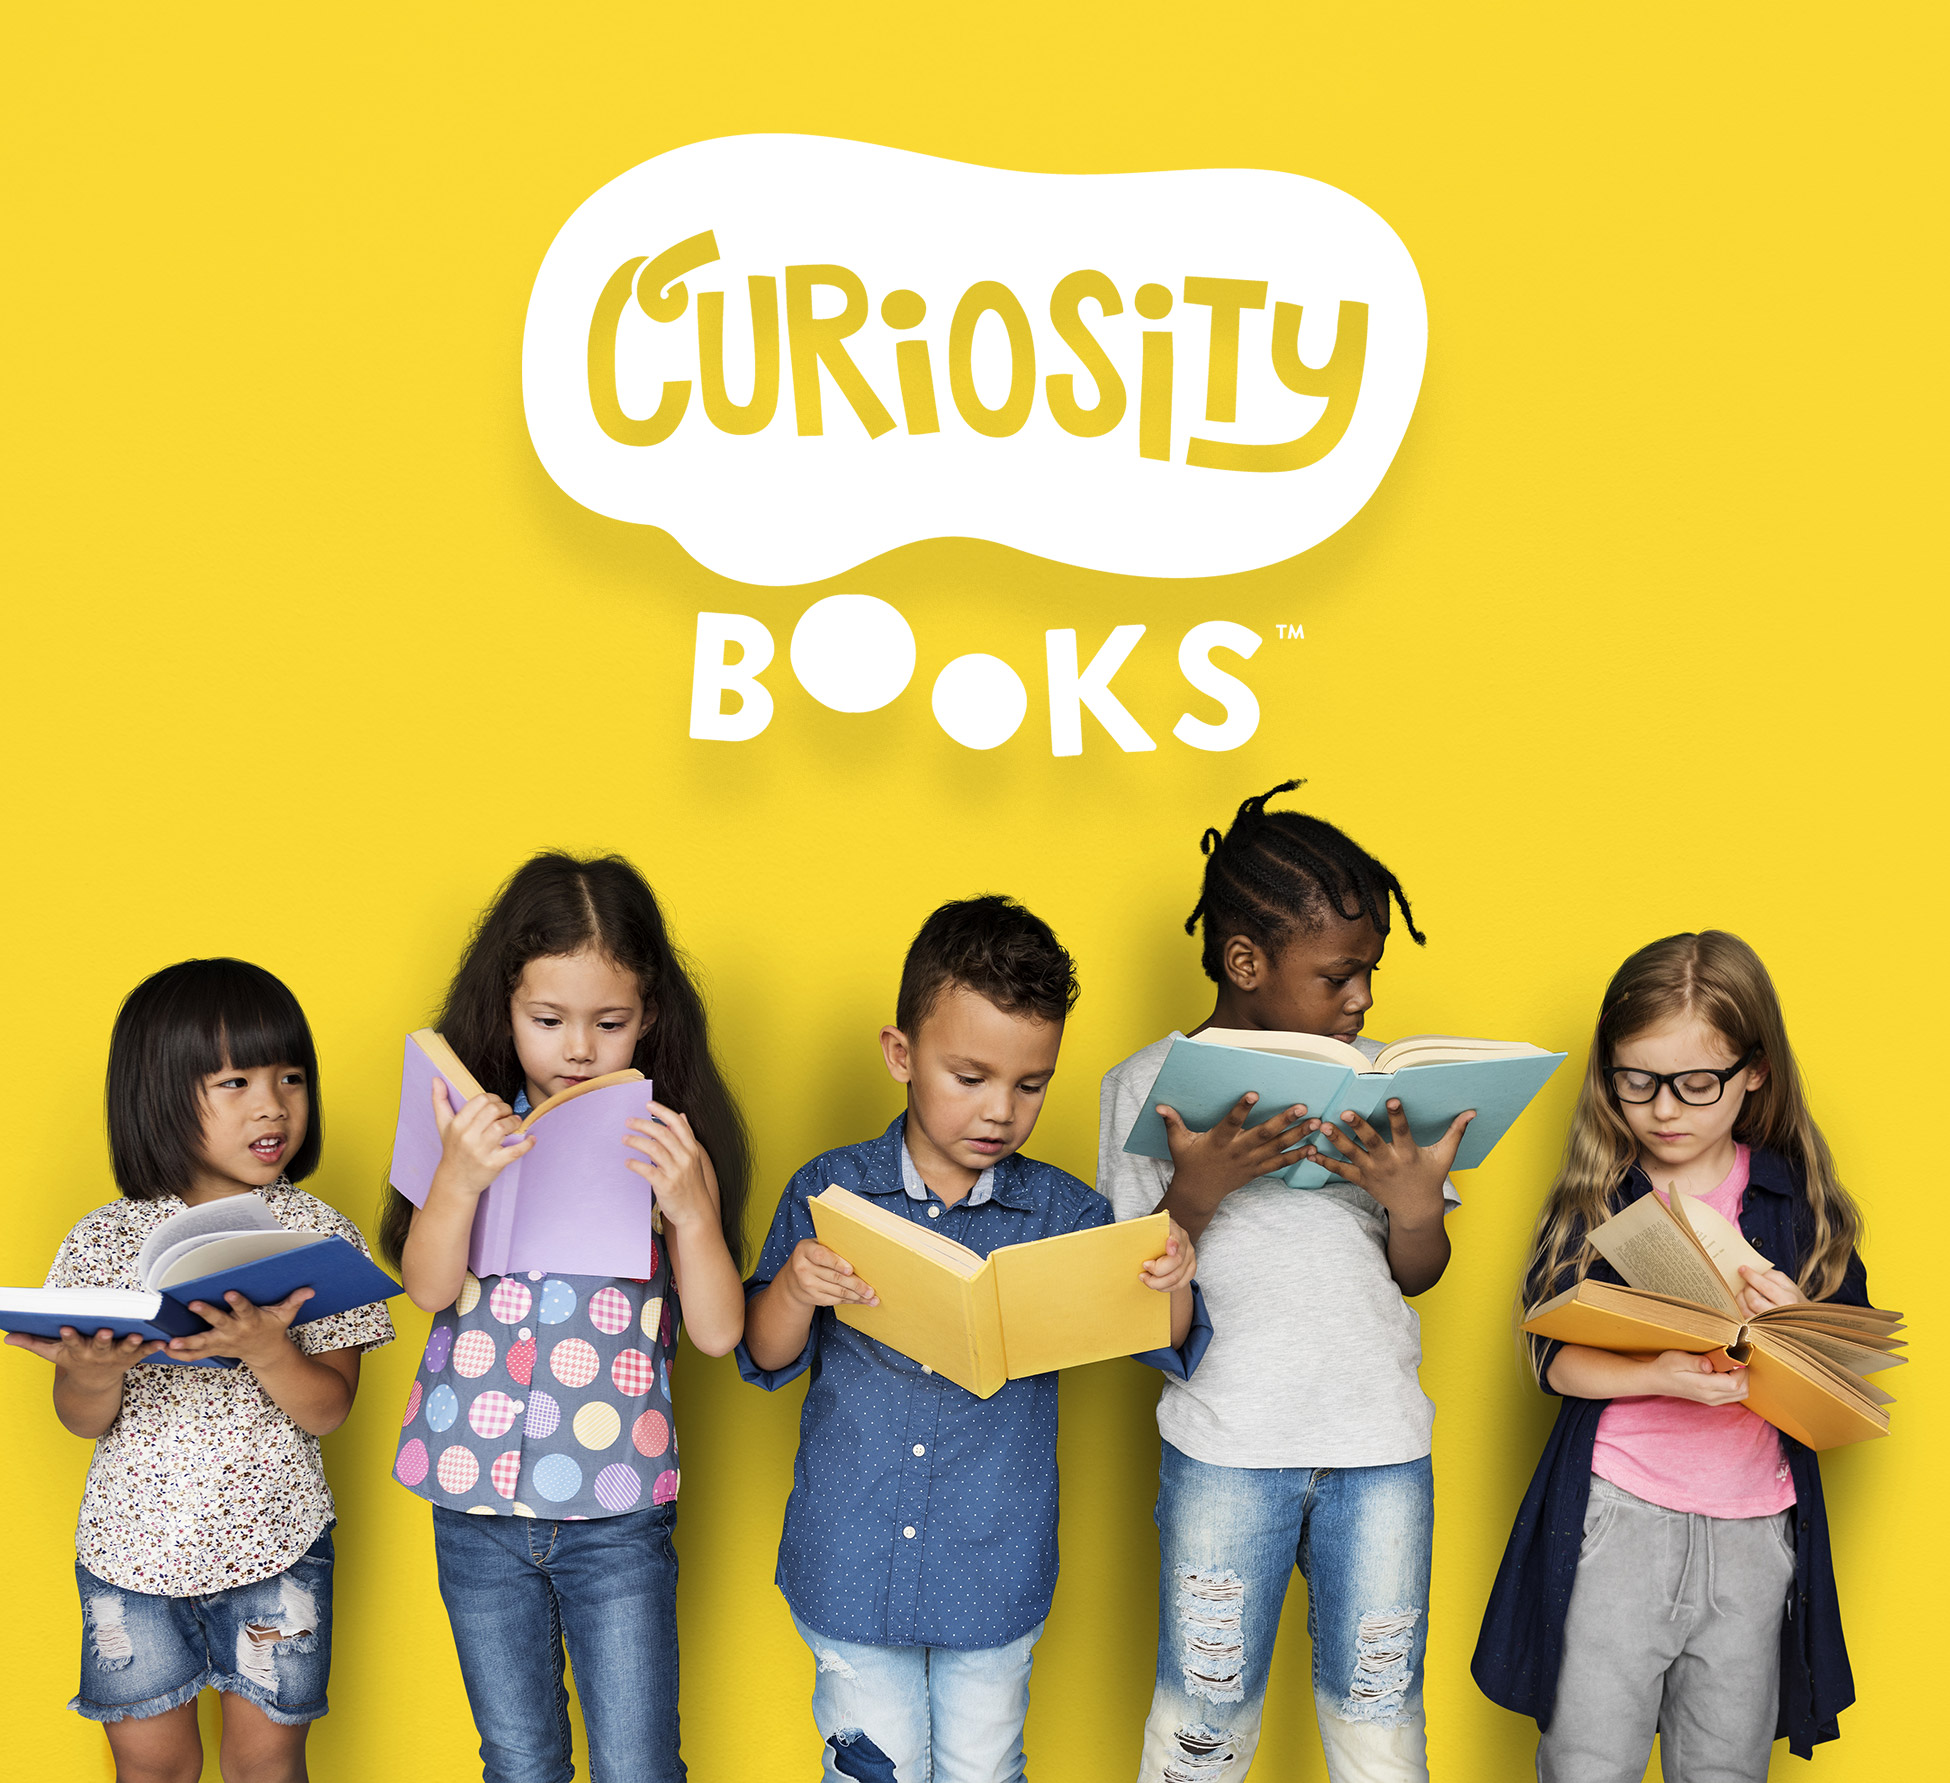 - An incredibly exciting and wildly varied children's publishing brand, Curiosity Books is soon to release our first offering of captivating stories in Fall of 2018 with both licensed and original books. Following closely is a slate of even more stories destined for both Spring and Fall 2019!